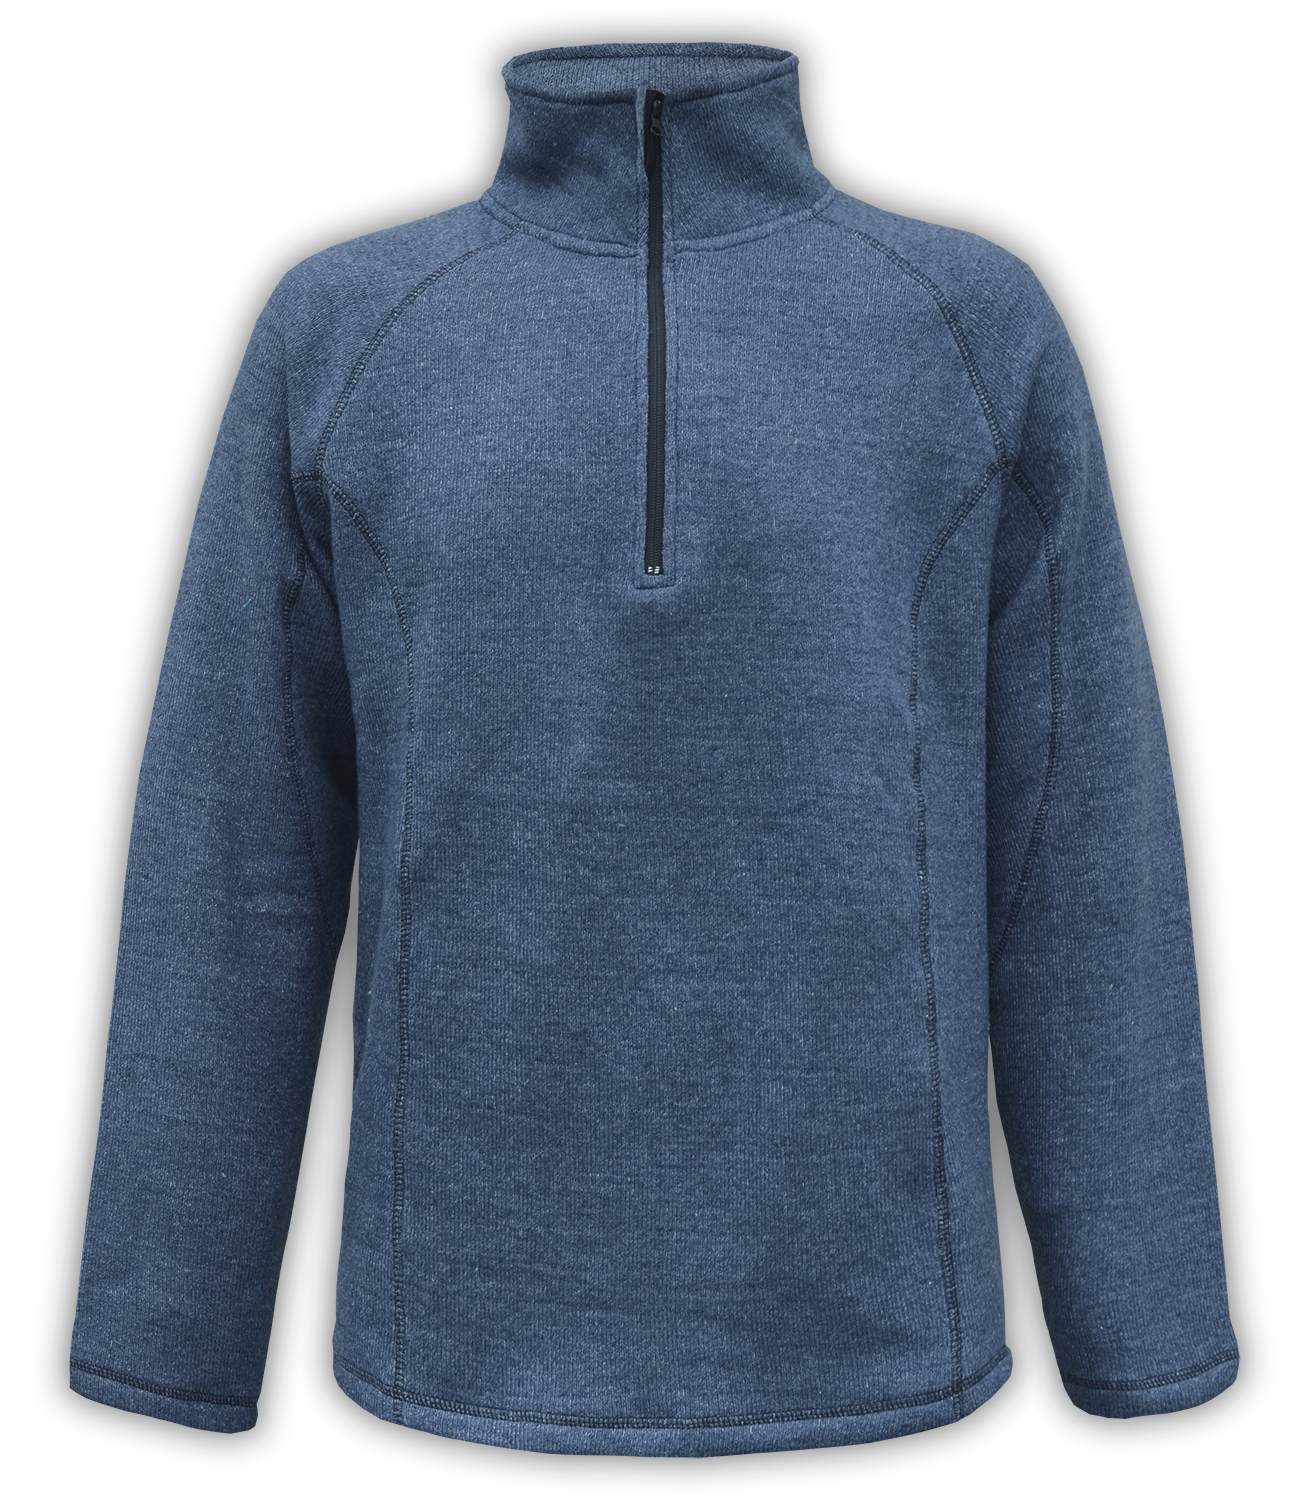 Renegade club unisex fleece pullover, half zip, nantucket soft fleece, mens pullover, womens pullover, denim, blue